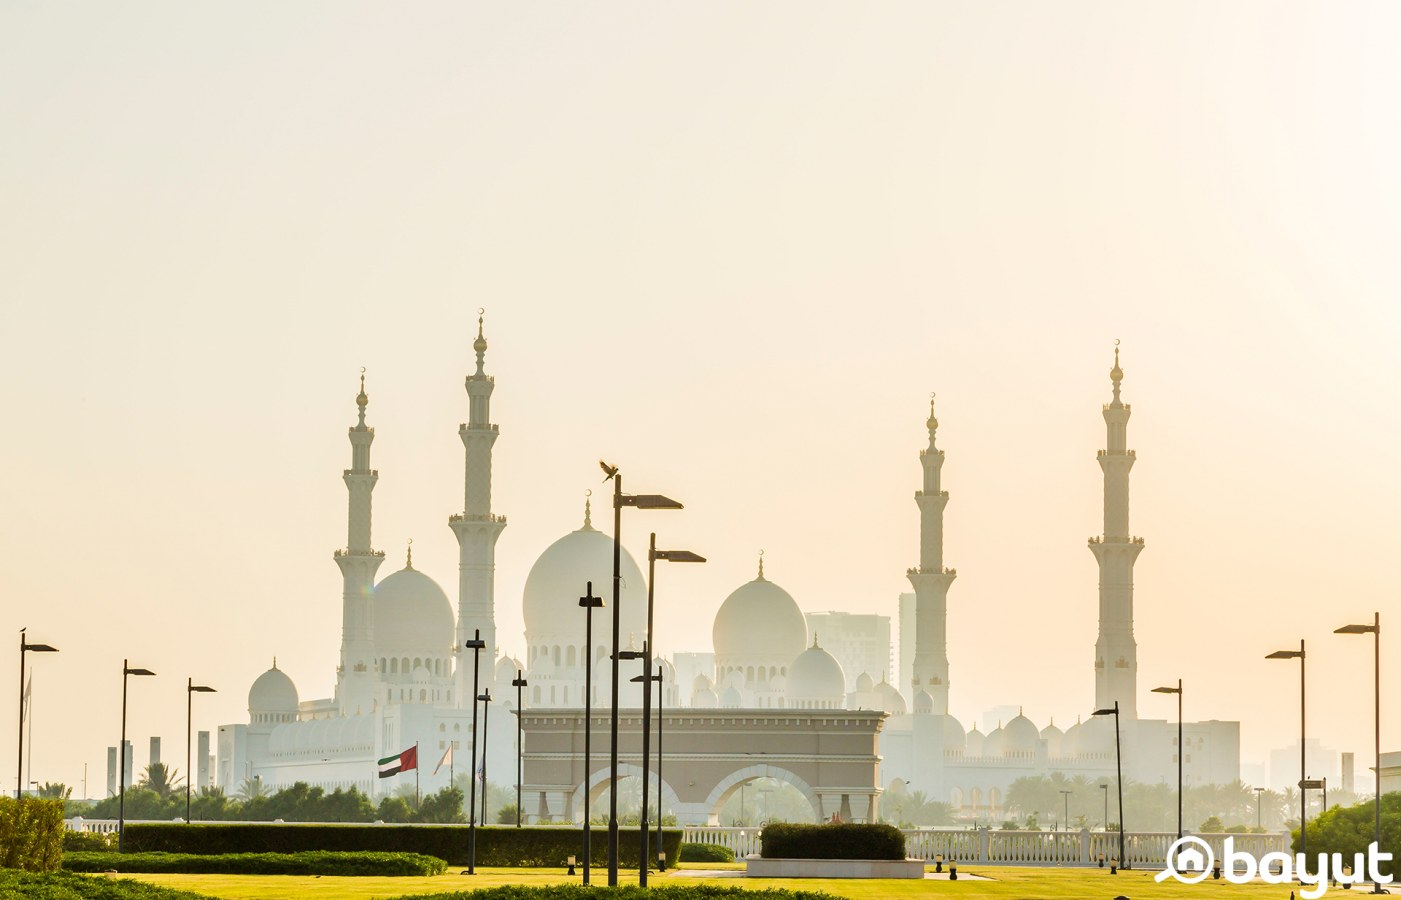 Cheapest Areas of Abu Dhabi for Buying & Renting - MyBayut